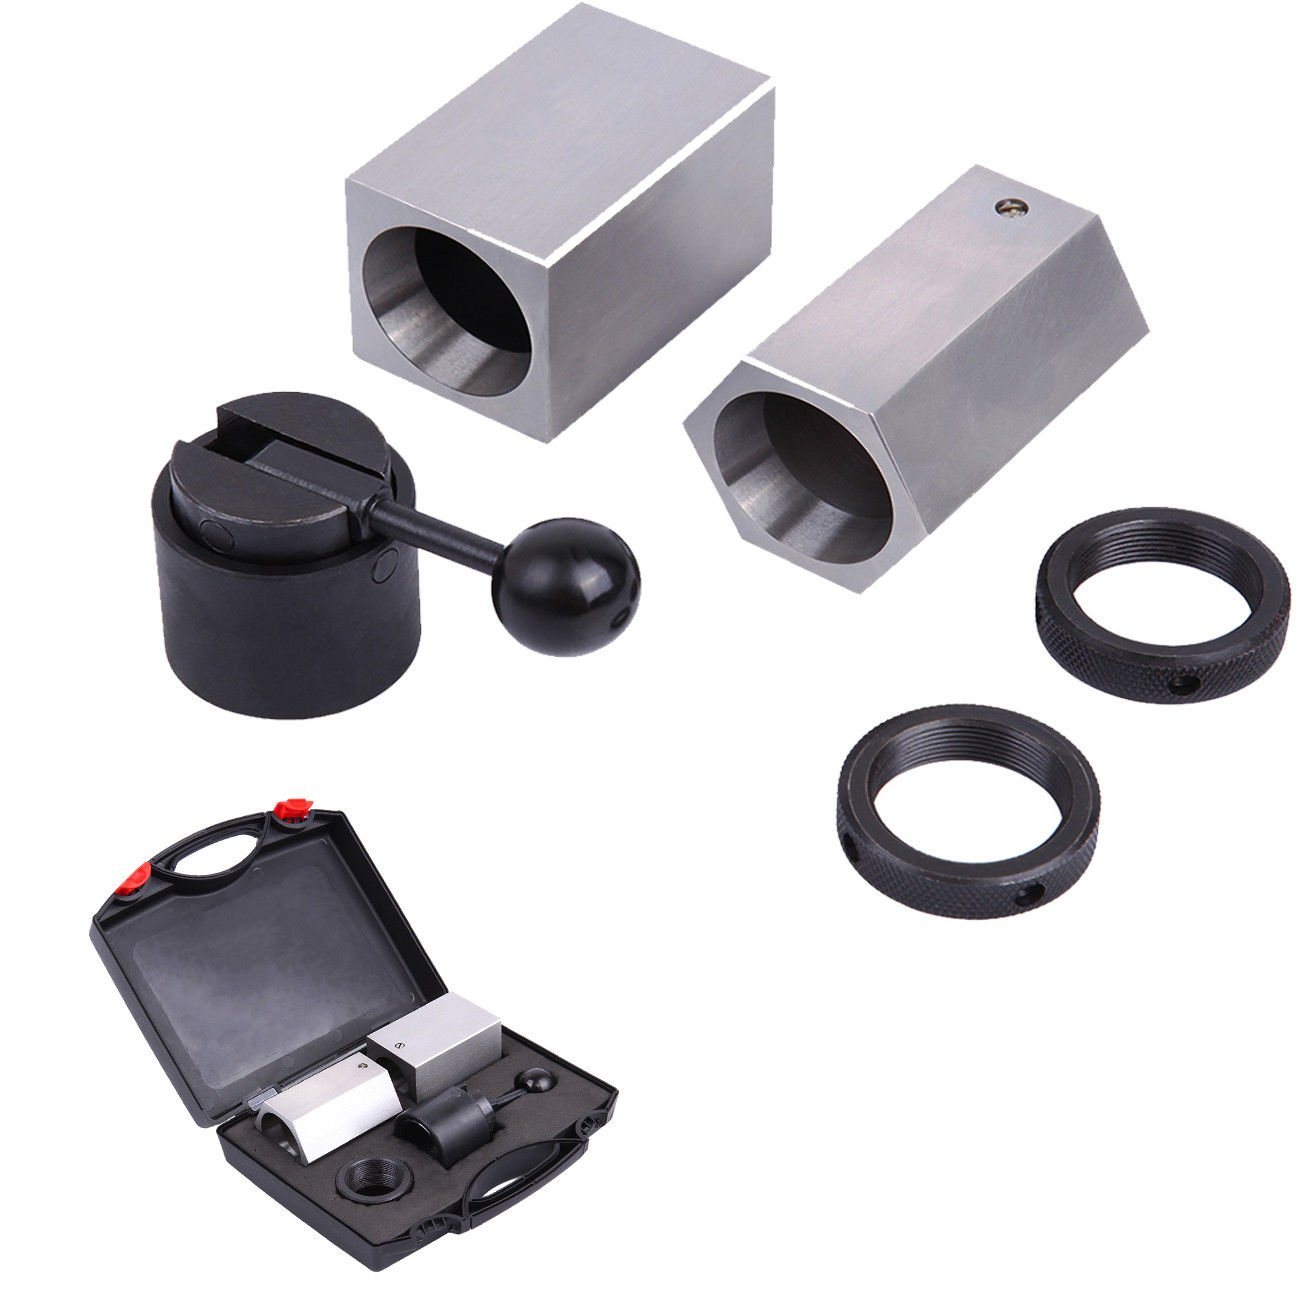 PanelTech 5C-CB Collet Block Set Four-sided & Six-sided Hardened Precision Ground 5C Collet Fixtures Square Hex Chuck Rings Closer Holder for Milling Lathes Surface Grinder with Wooden Storage Box